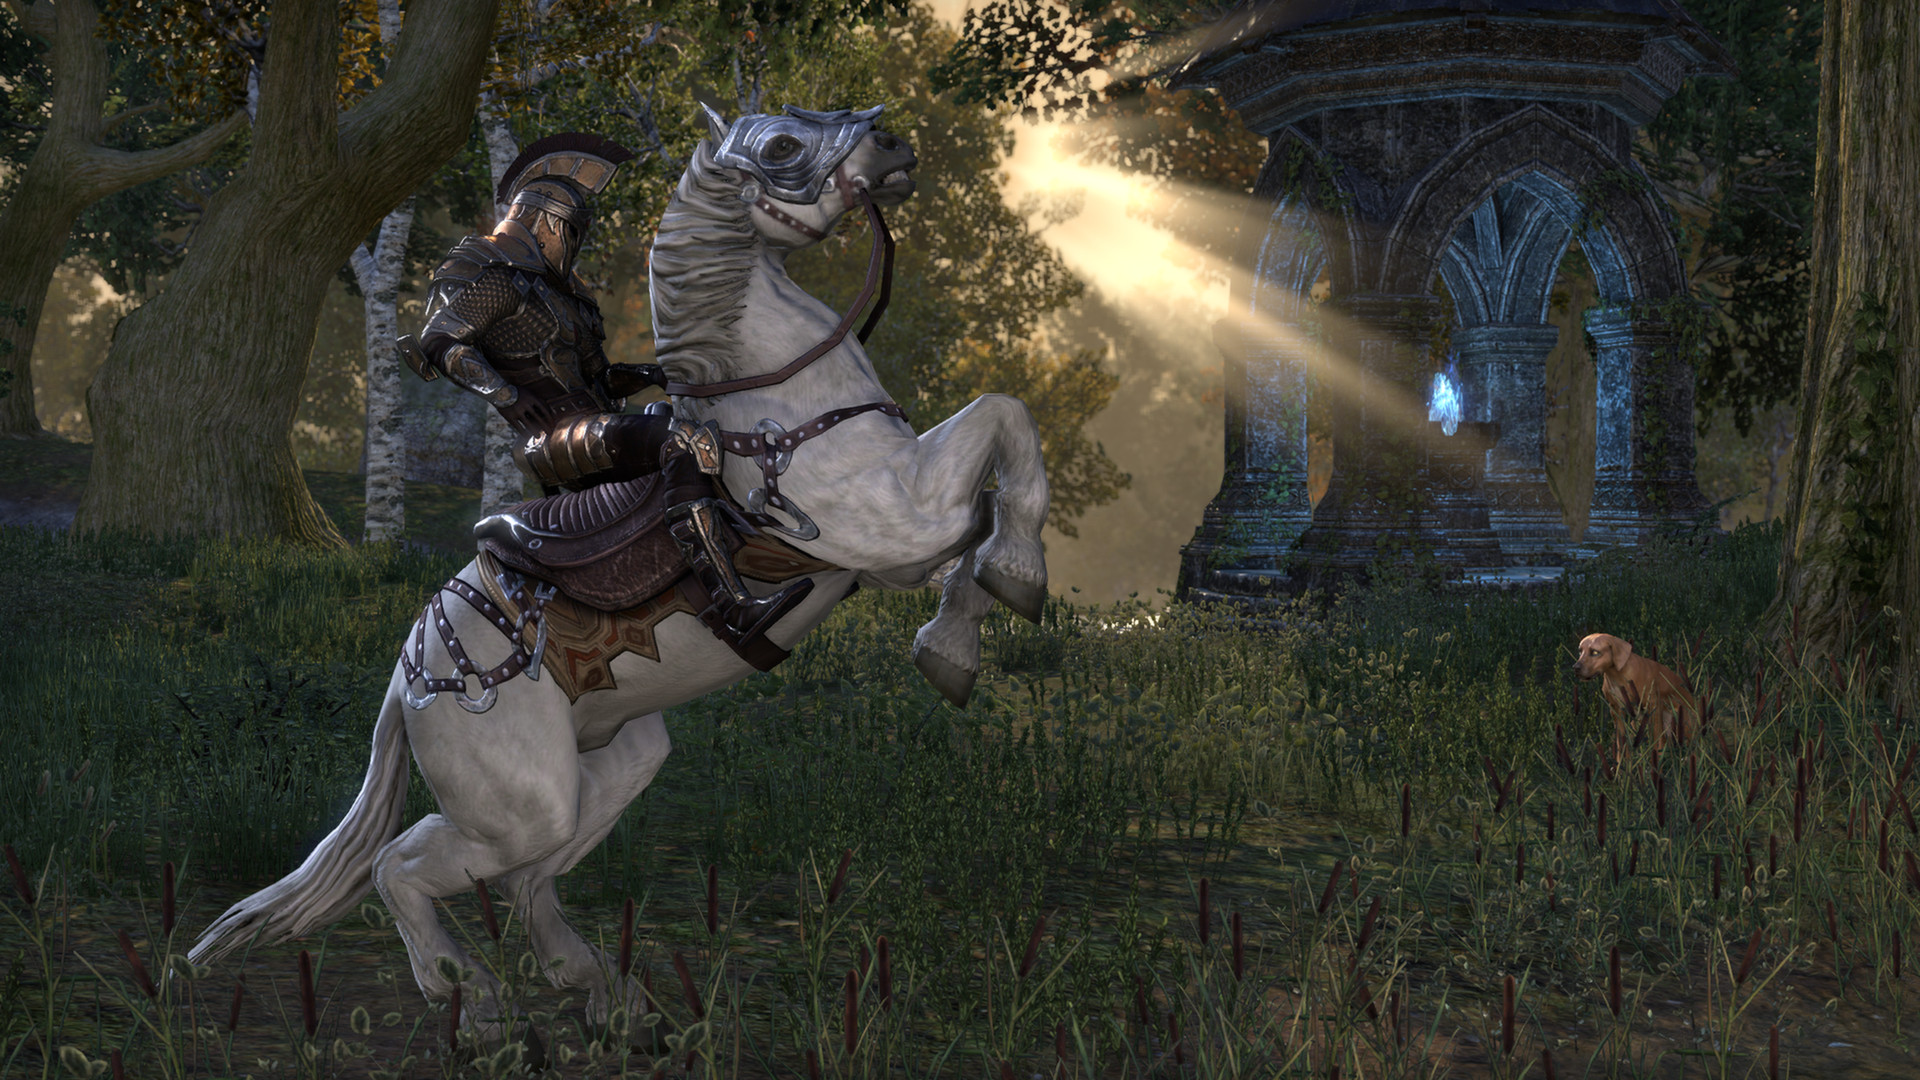 Elder Scrolls Online getting new zones active world PvP and more